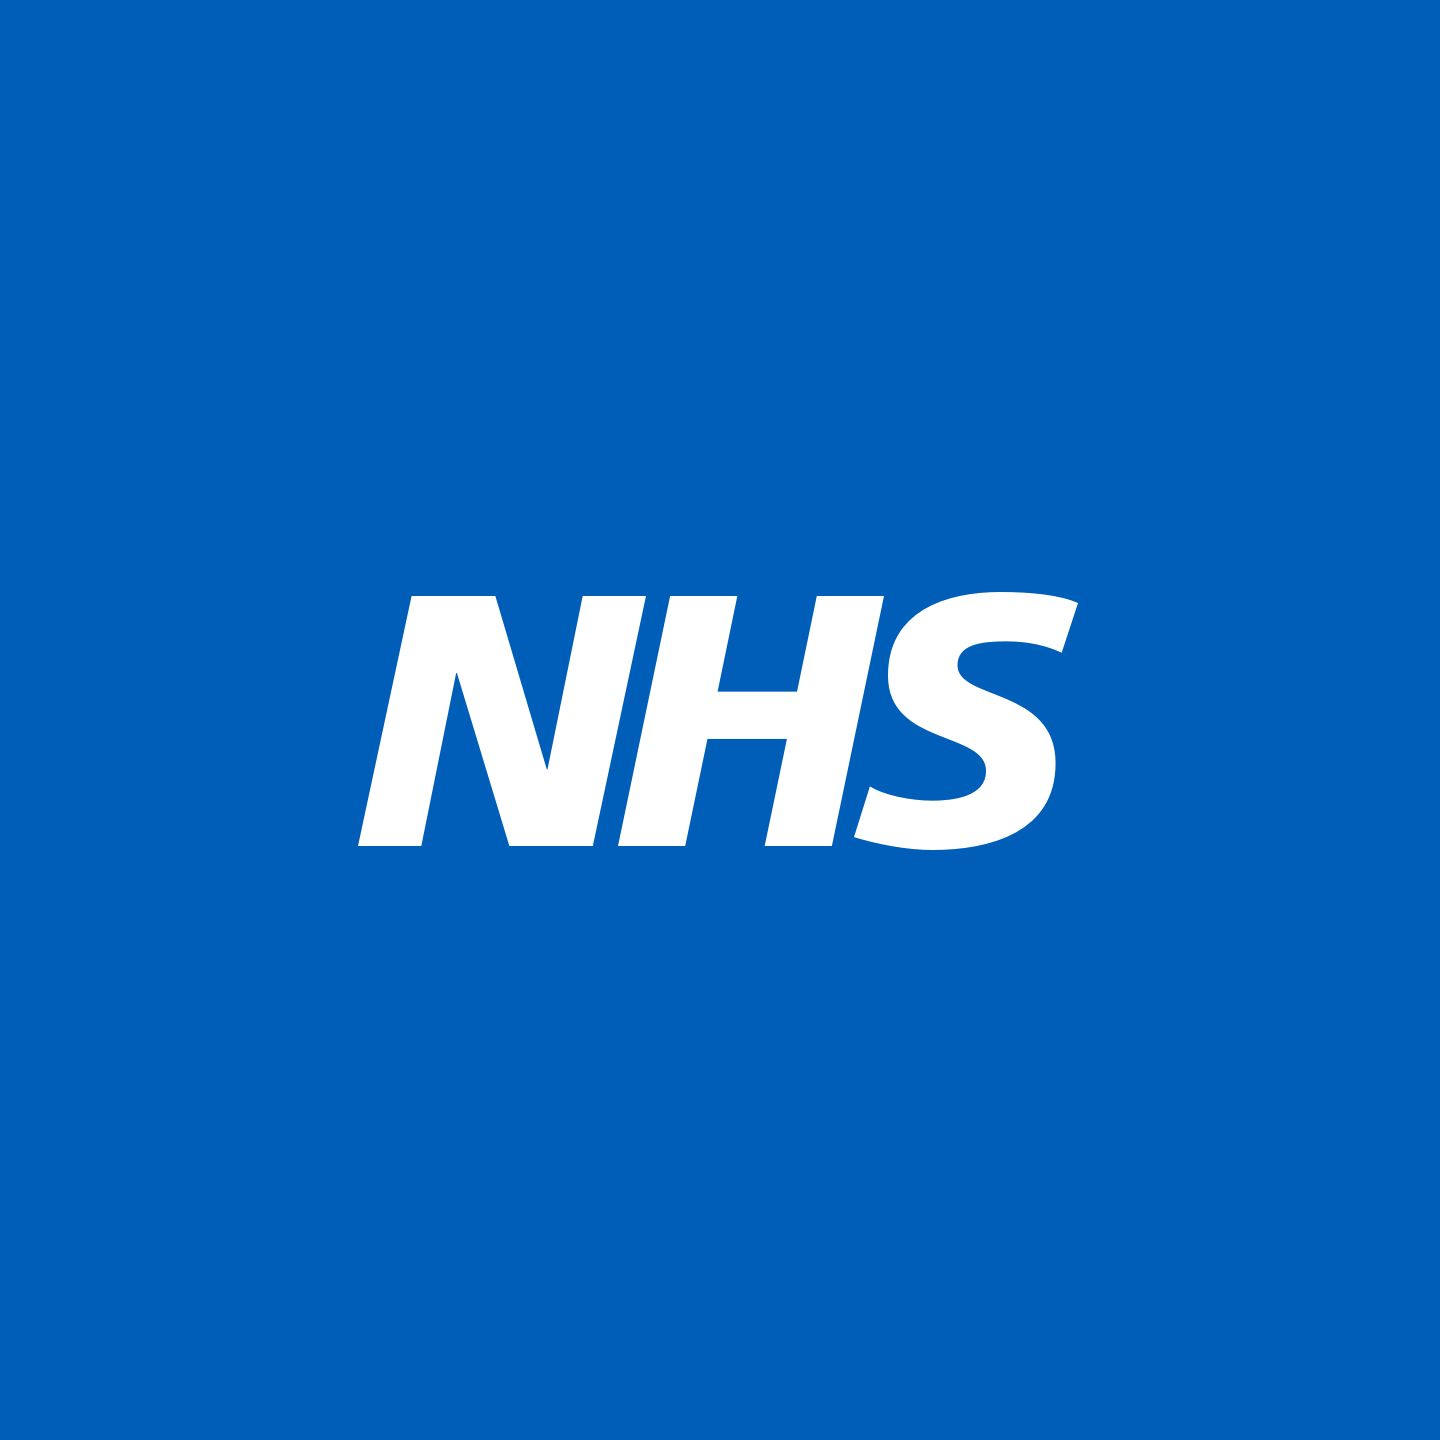 NHS logo on Blue Background